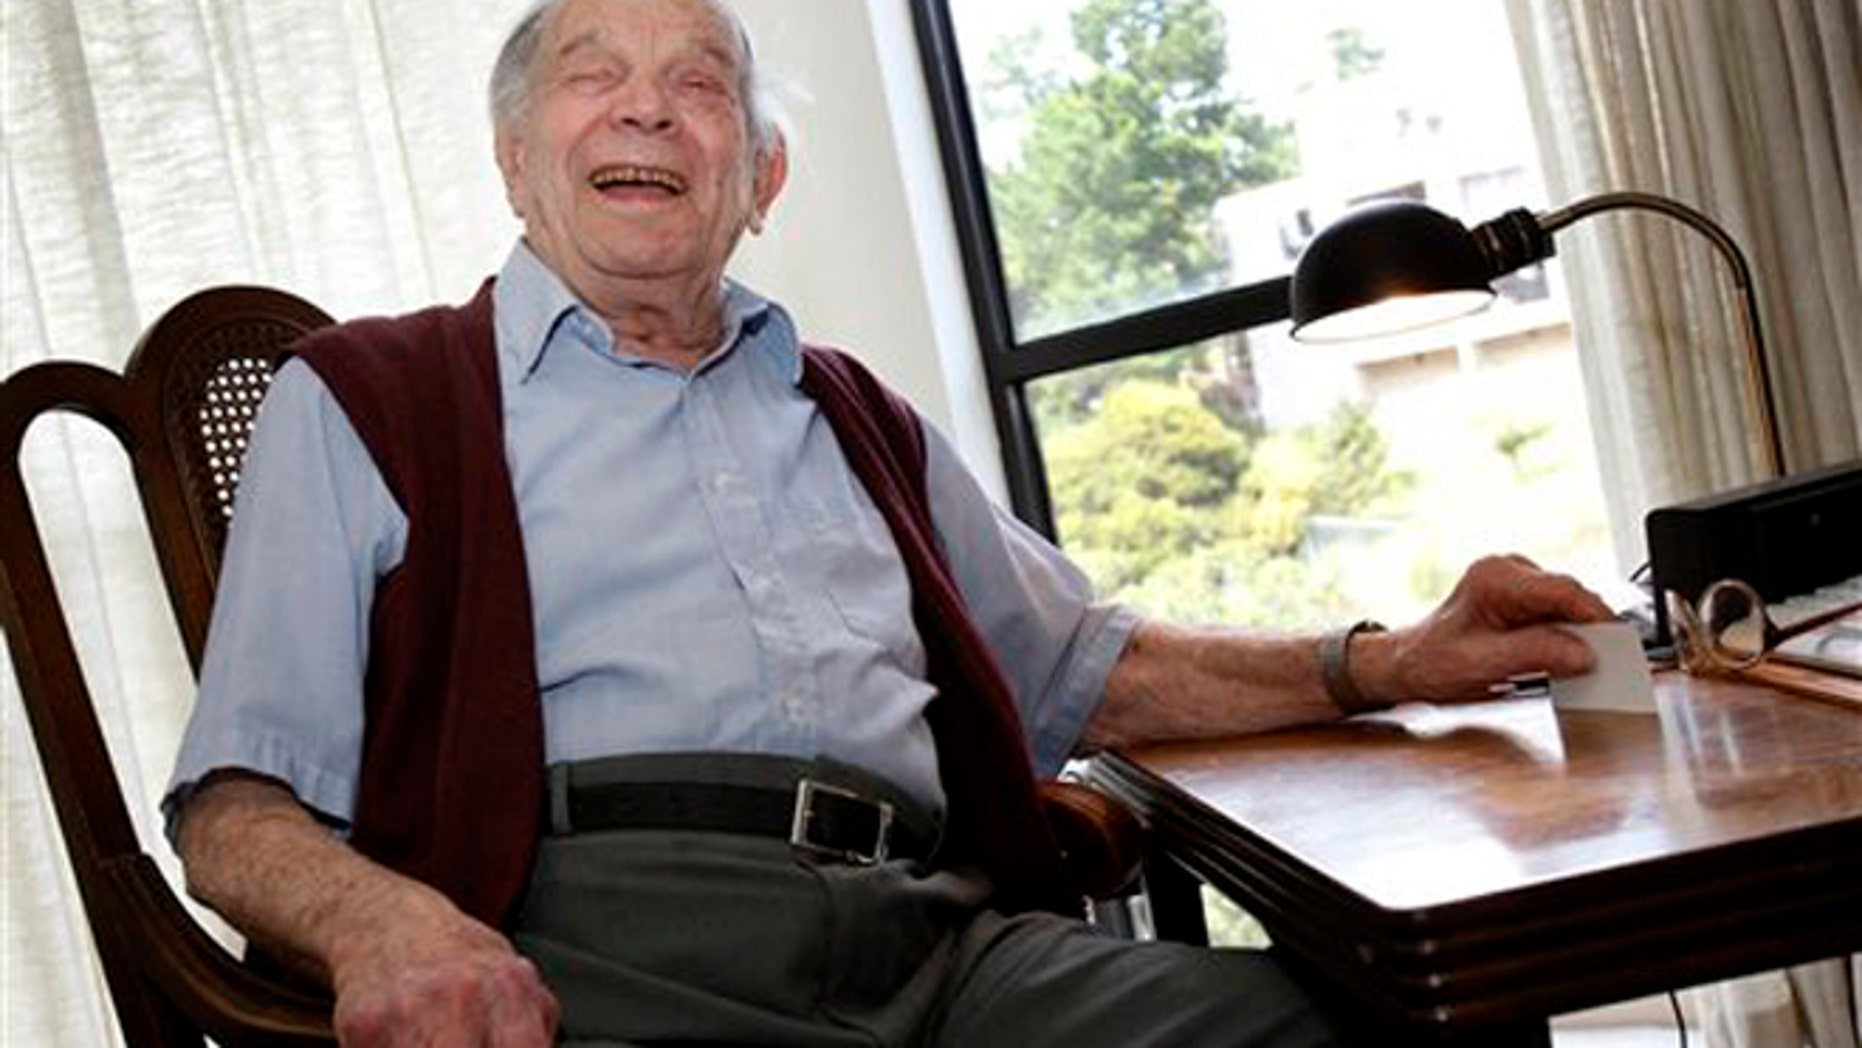 """FILE - In this Wednesday April 13, 2011 file photo, Bill Del Monte smiles at his home in Greenbrae, Calif. Bill Del Monte was born shortly before the San Francisco earthquake of 1906 and was one of the youngest to survive. William A. """"Bill"""" Del Monte died at a retirement home in Marin County Monday, Jan. 11, 2016. He was 11 days shy of his 110th birthday. (Brant Ward/San Francisco Chronicle via AP)"""